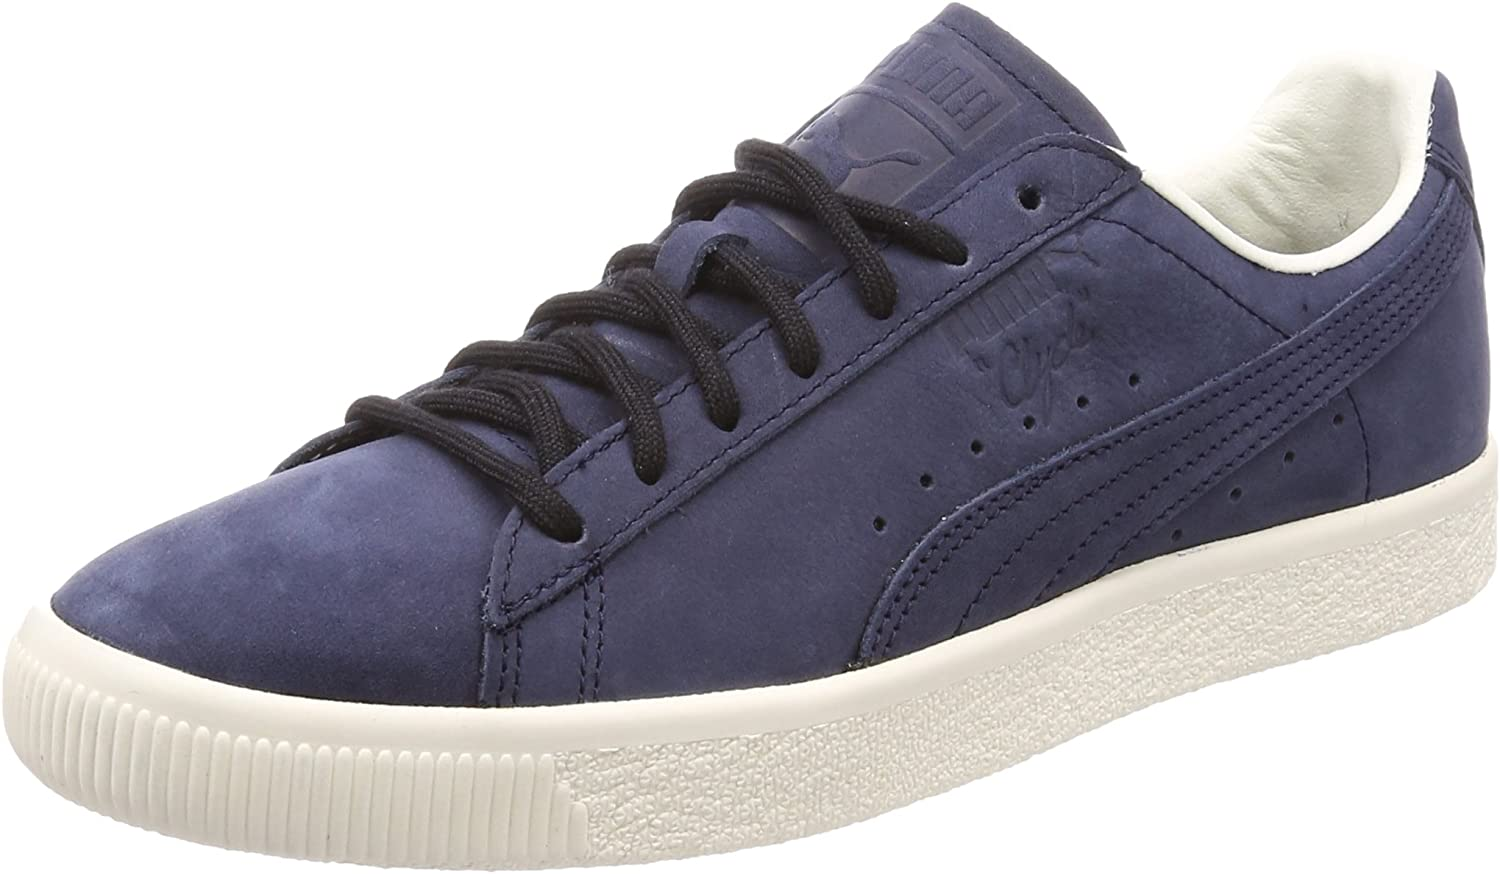 Puma Clyde Frosted Trainers bluee